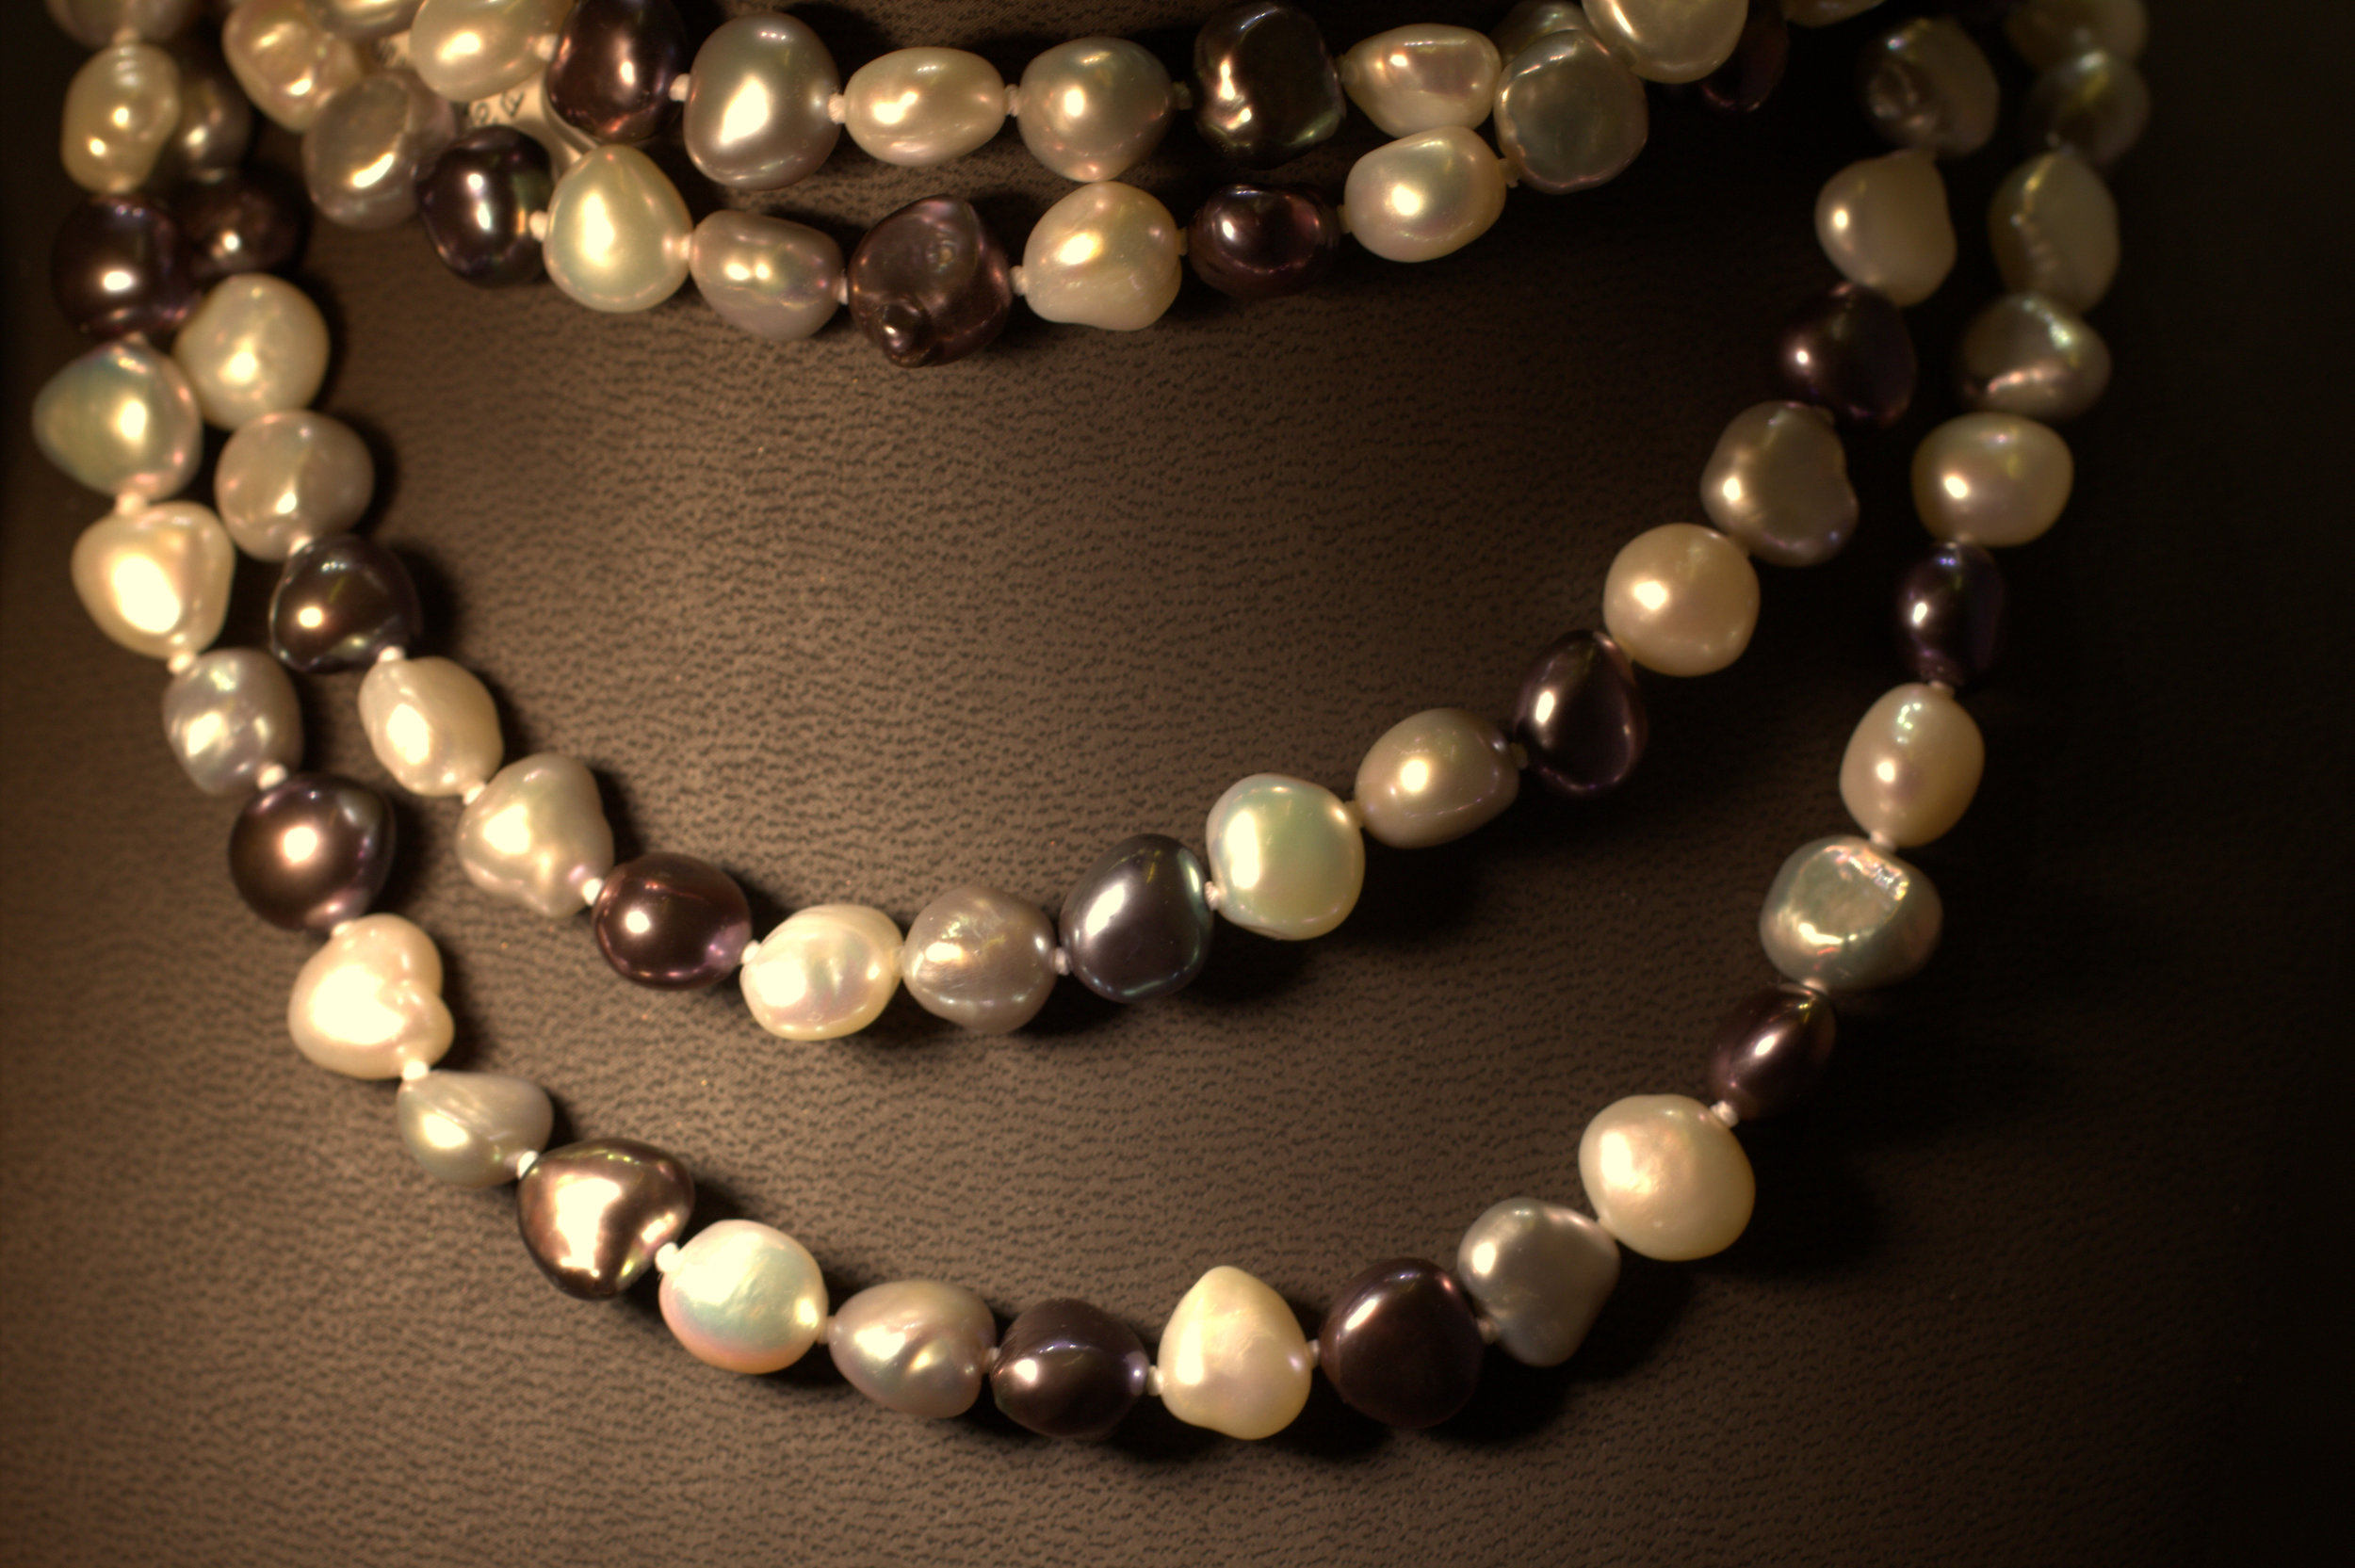 Classic yet chic54 inch strand of natural black and white freshwater pearls with color enhanced burgundy purple pearls. Hottest new trend, and great gift idea.  $250